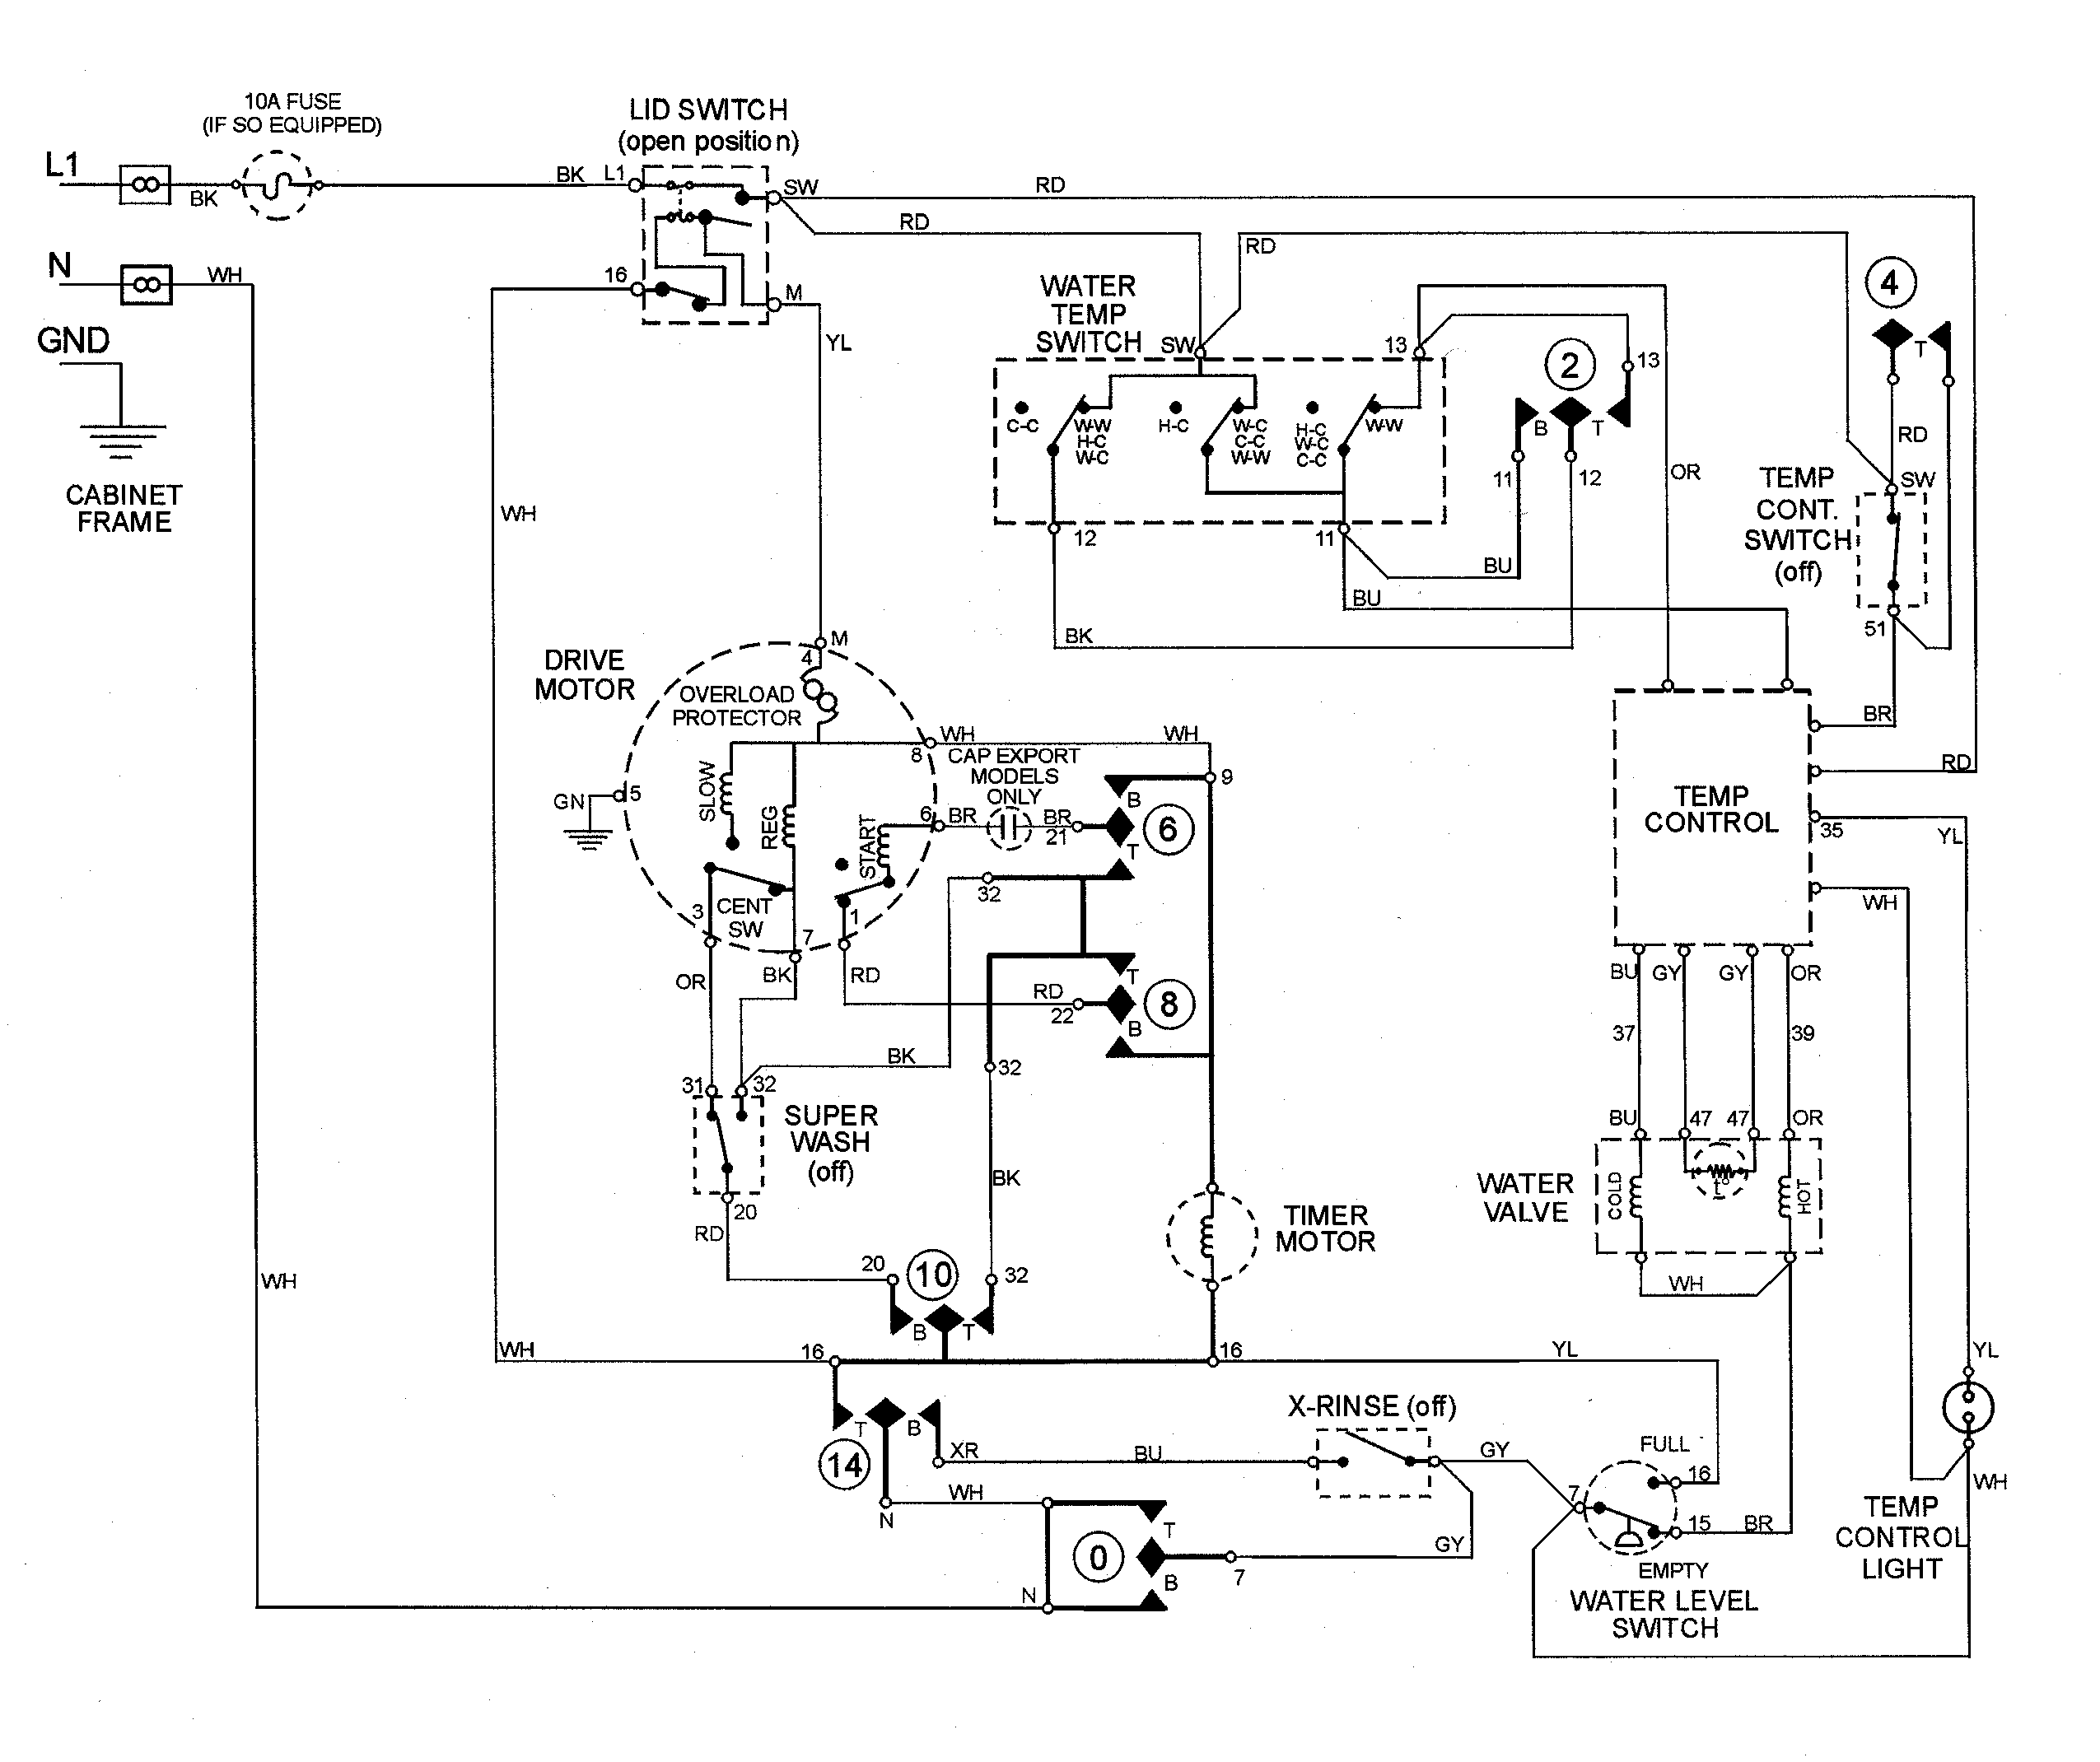 dbfe84c1294a289a6a6d42ba64109ee4 ge washer wiring diagram ge profile washer wiring diagram \u2022 indy500 co ge profile microwave wiring diagram at creativeand.co